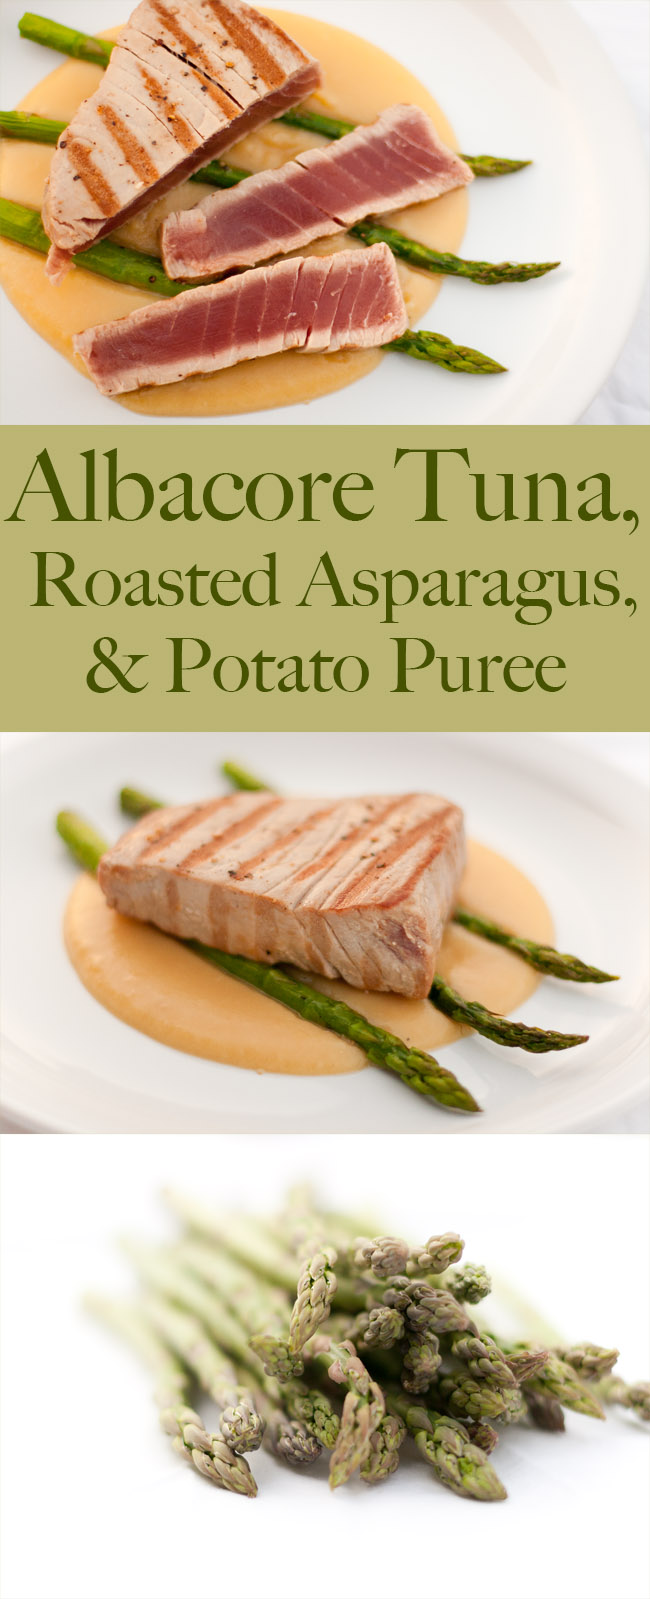 Seared Albacore Tuna over Roasted Asparagus and Potato Puree